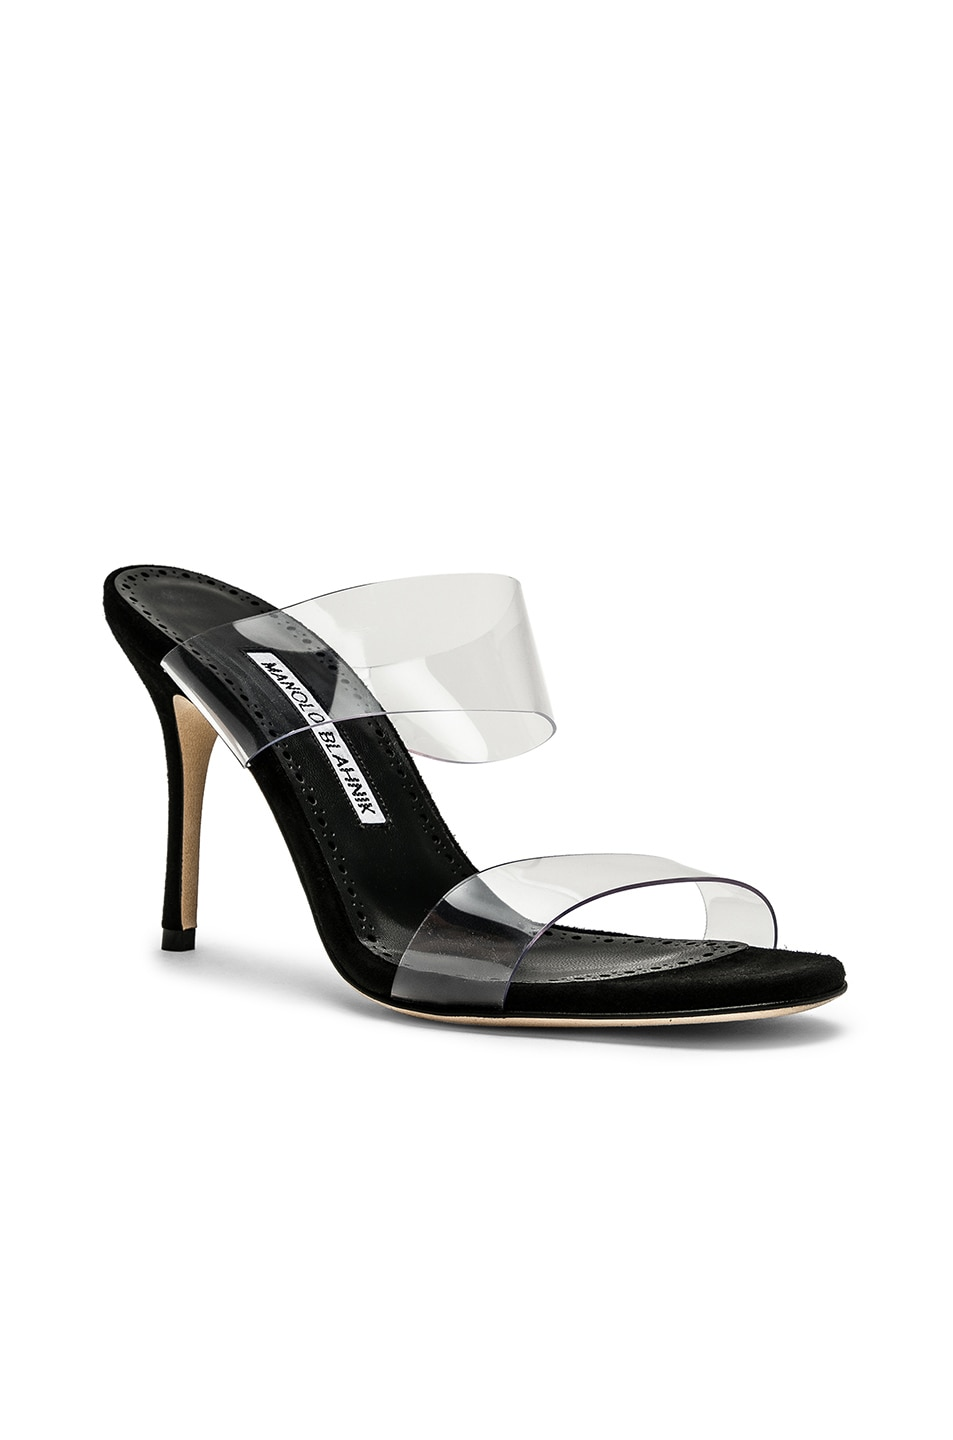 Image 2 of Manolo Blahnik PVC Scolto 90 Sandal in Black